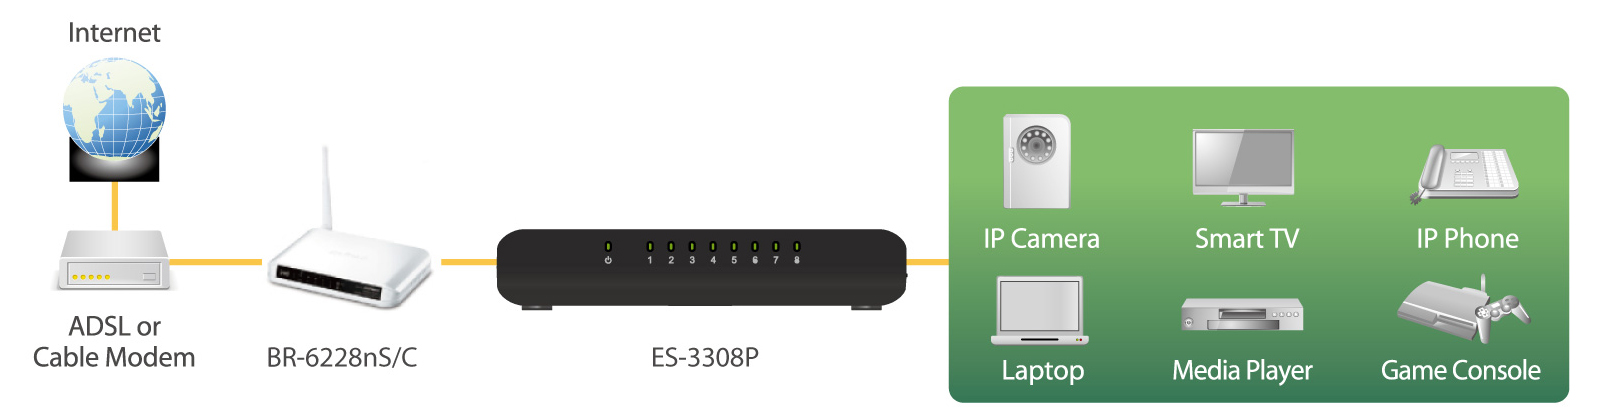 Edimax 8-Port Fast Ethernet Desktop Switch ES-3308P_V2 application diagram